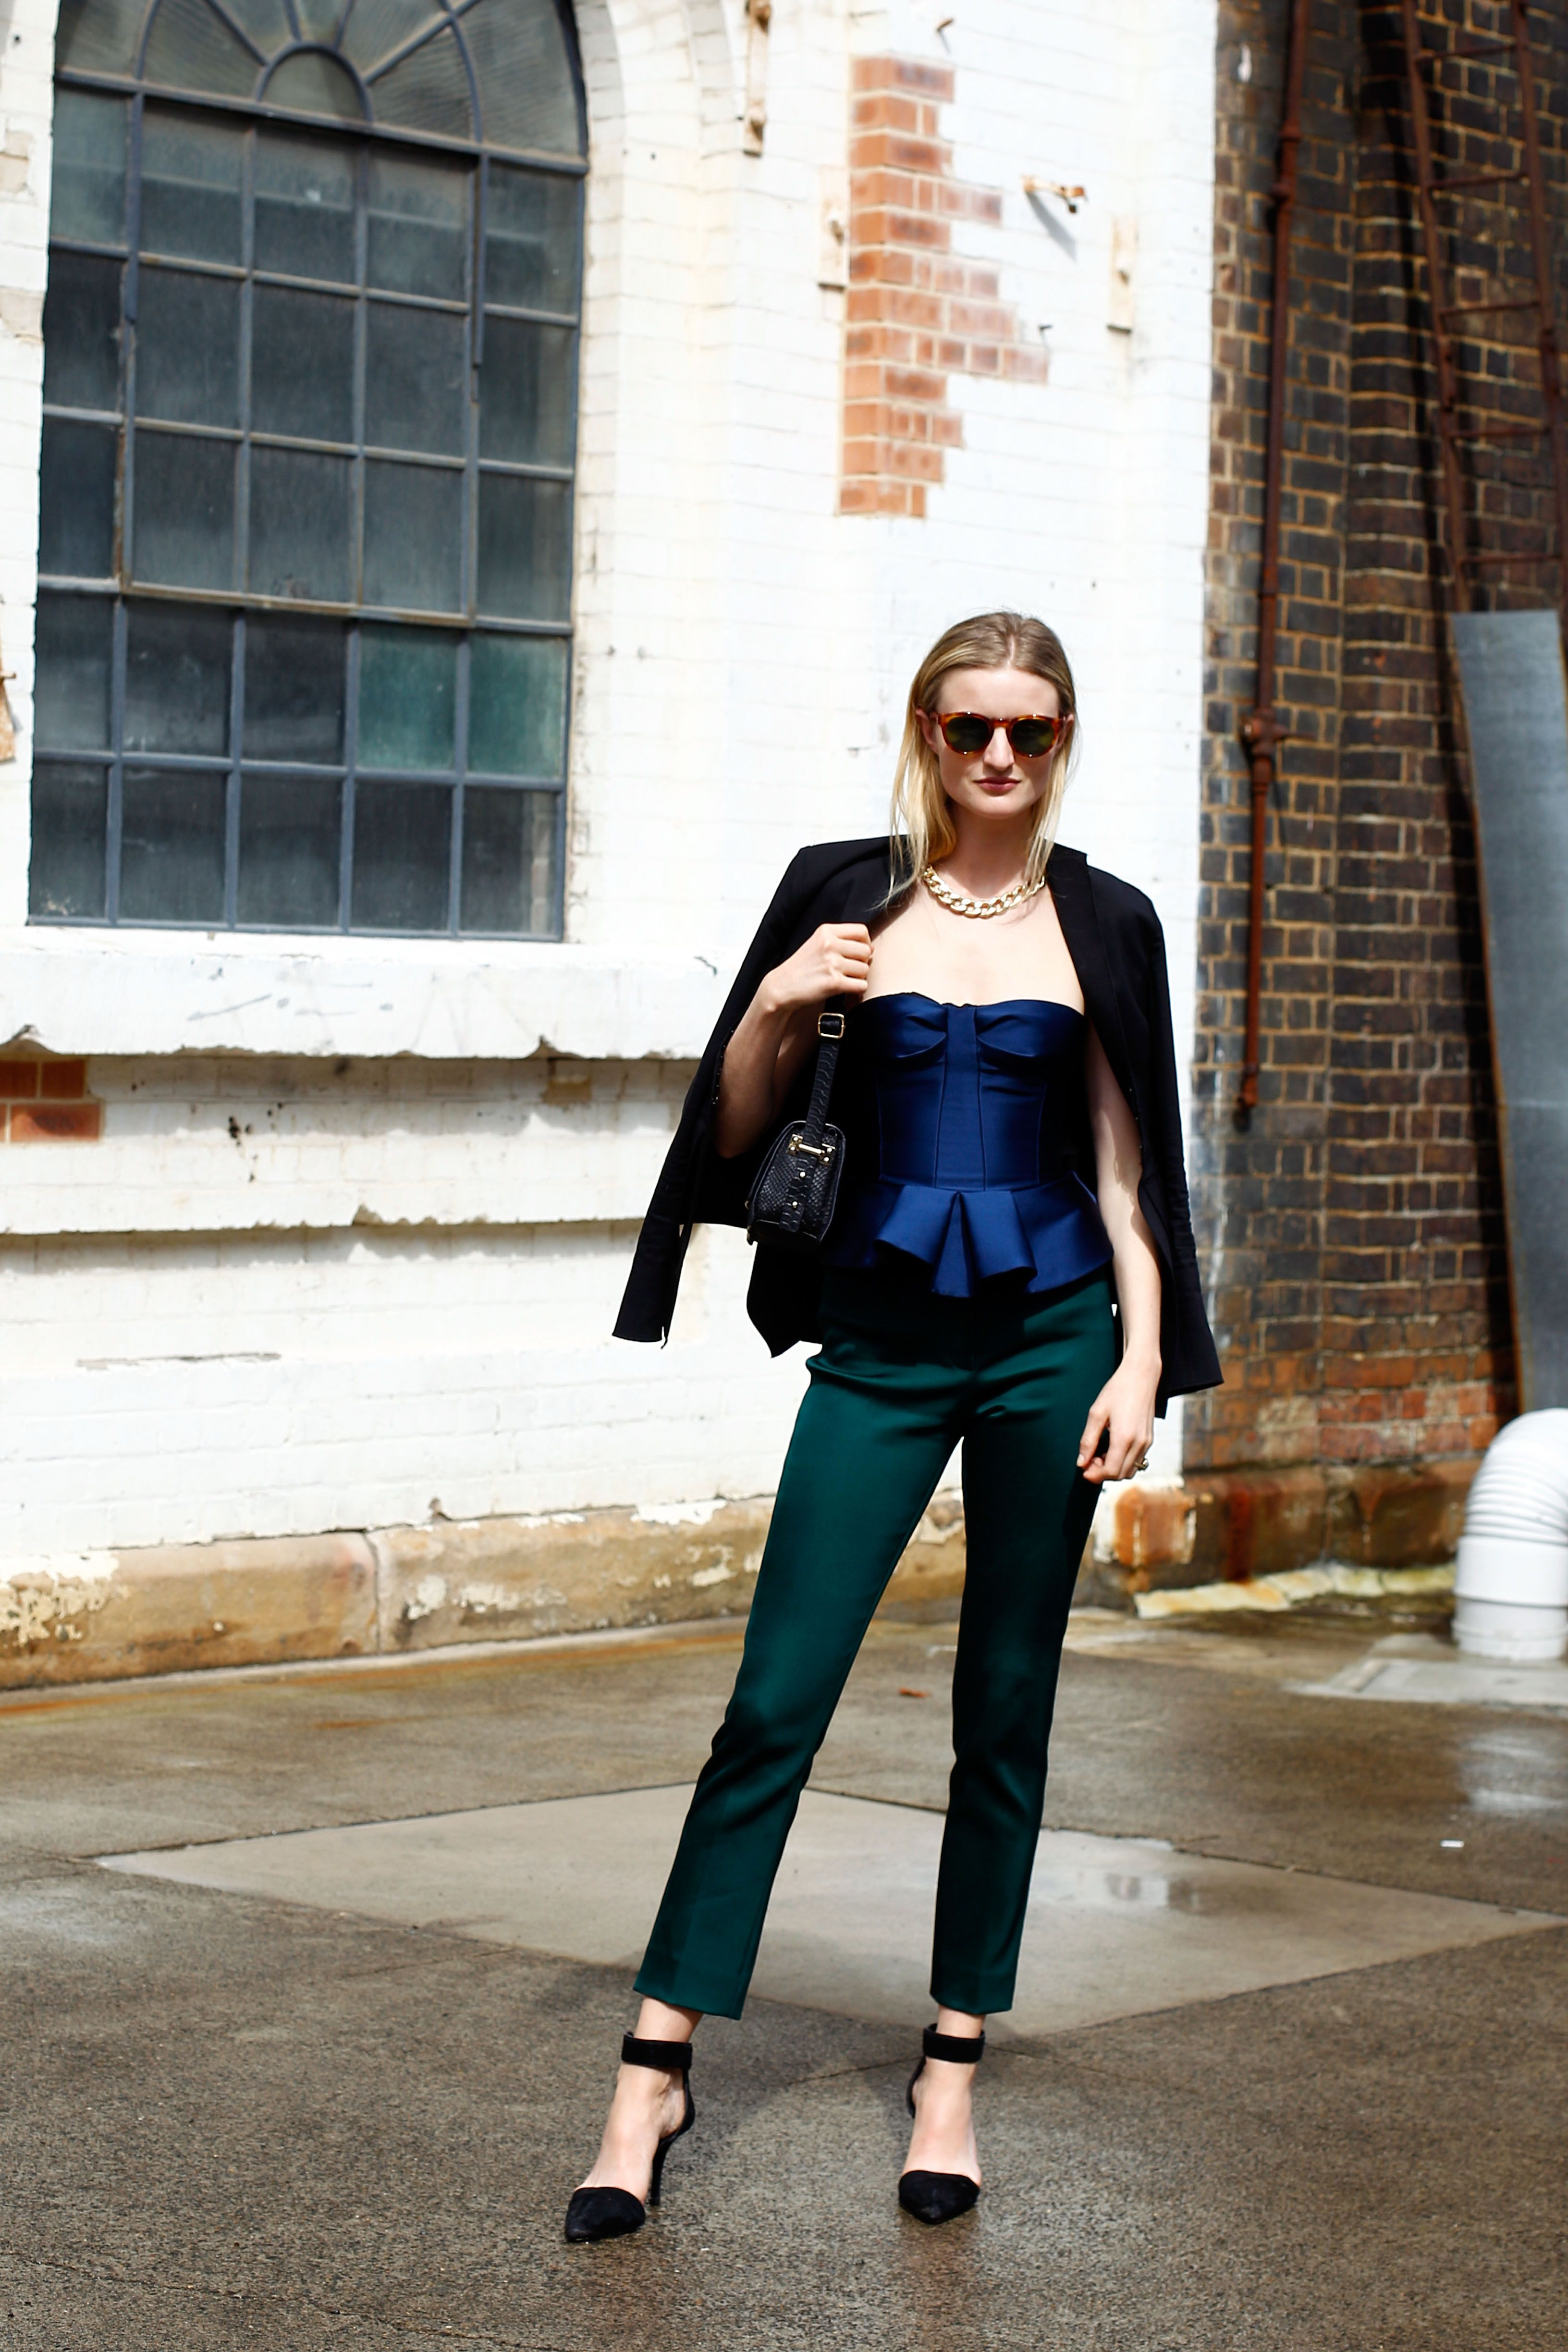 foto 20 New Year's Eve Outfit Ideas to Inspire Your Own First NightLook